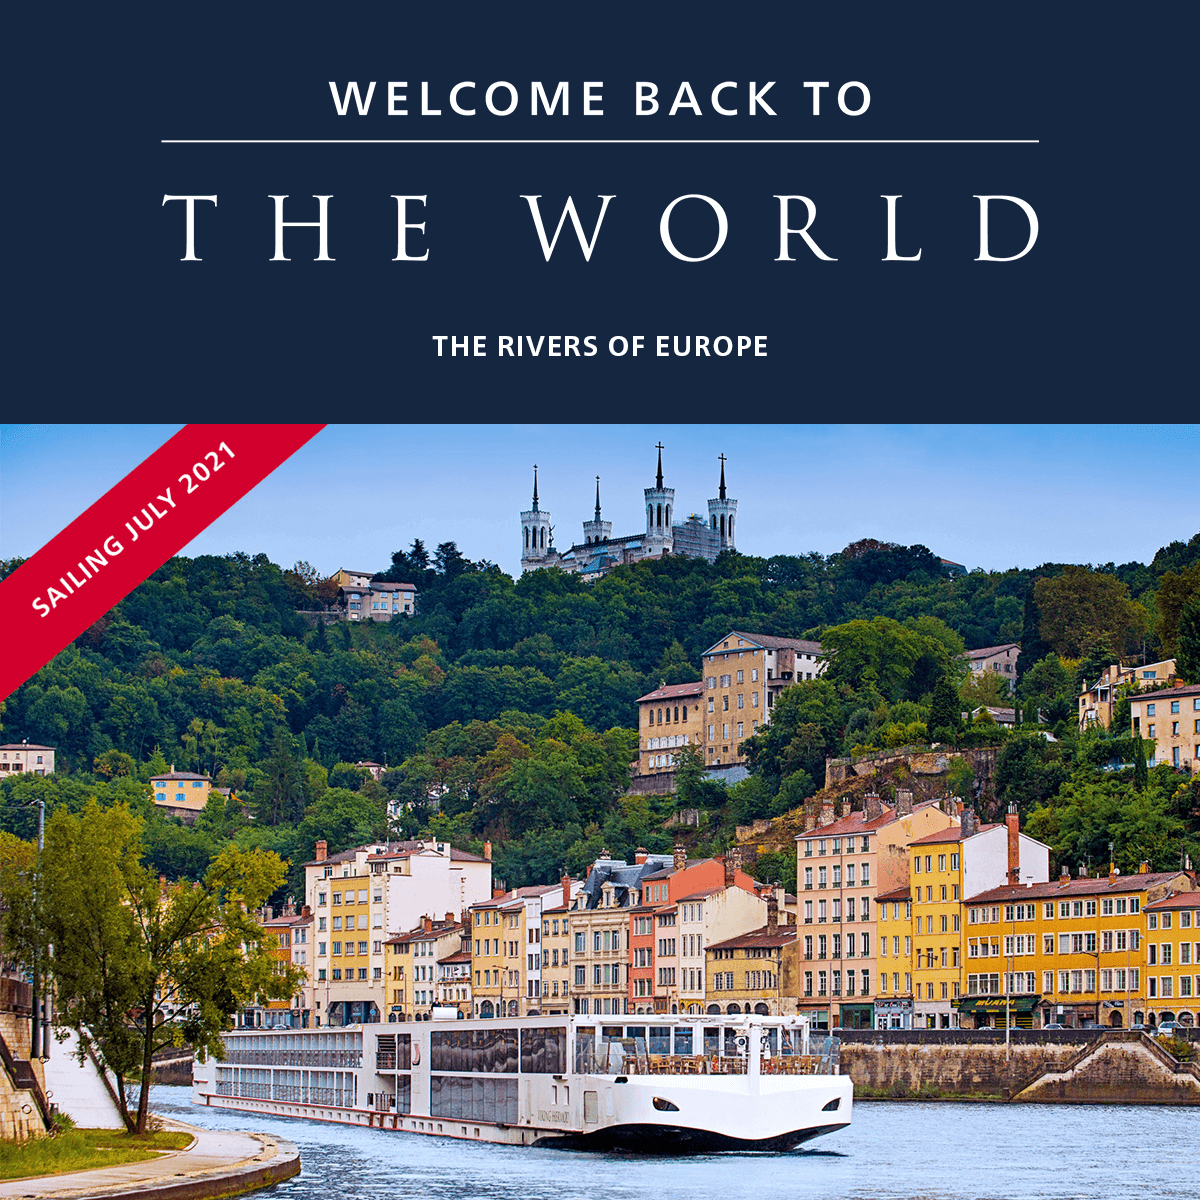 Welcome Back to The World: The Rivers of Europe. Viking River cruising